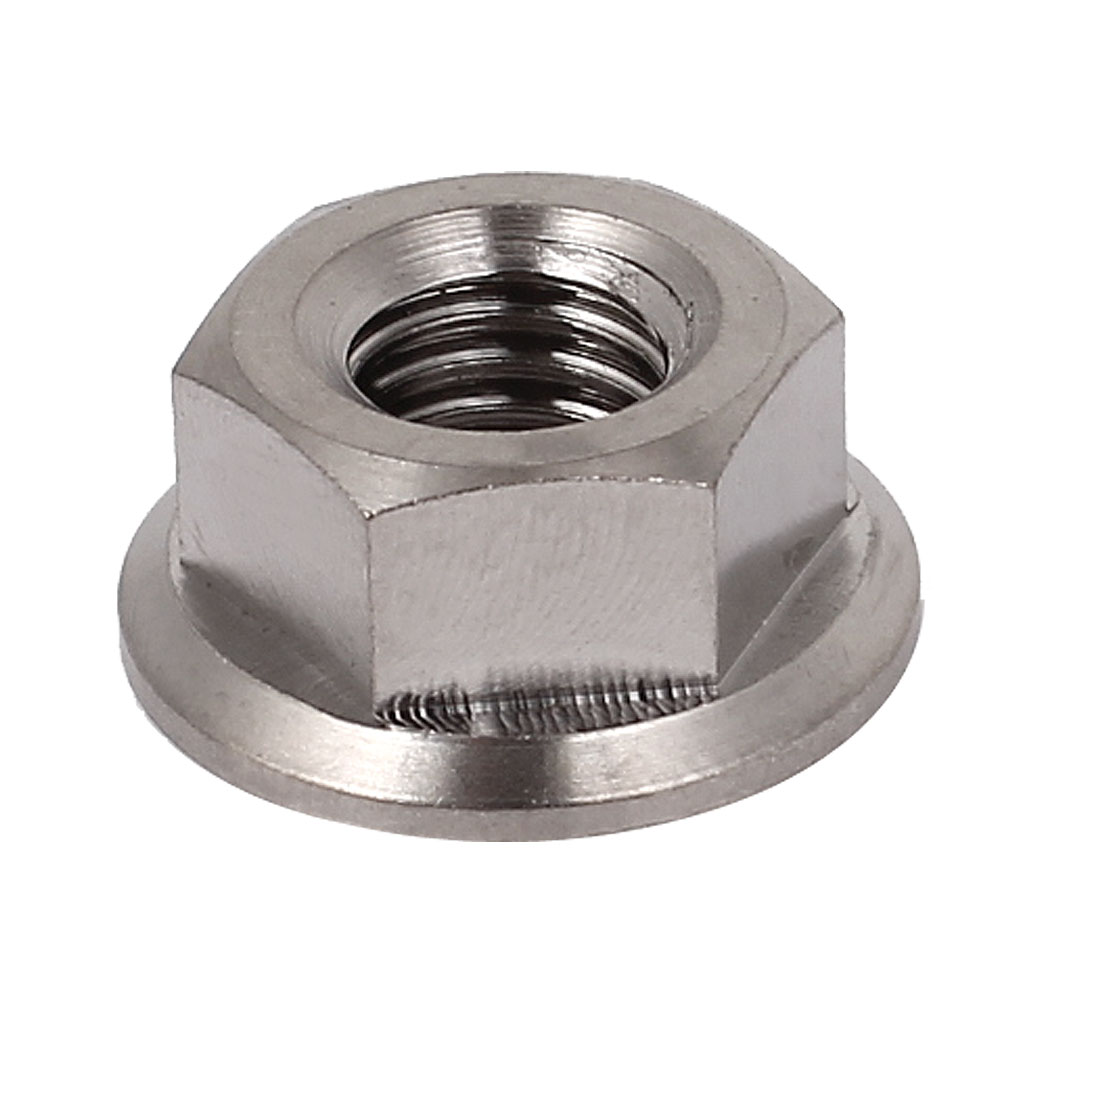 M8x1.25mm 13mm Hex Head Metric TC4 Titanium Flange Nut Bolt Silver Tone DIN 6923